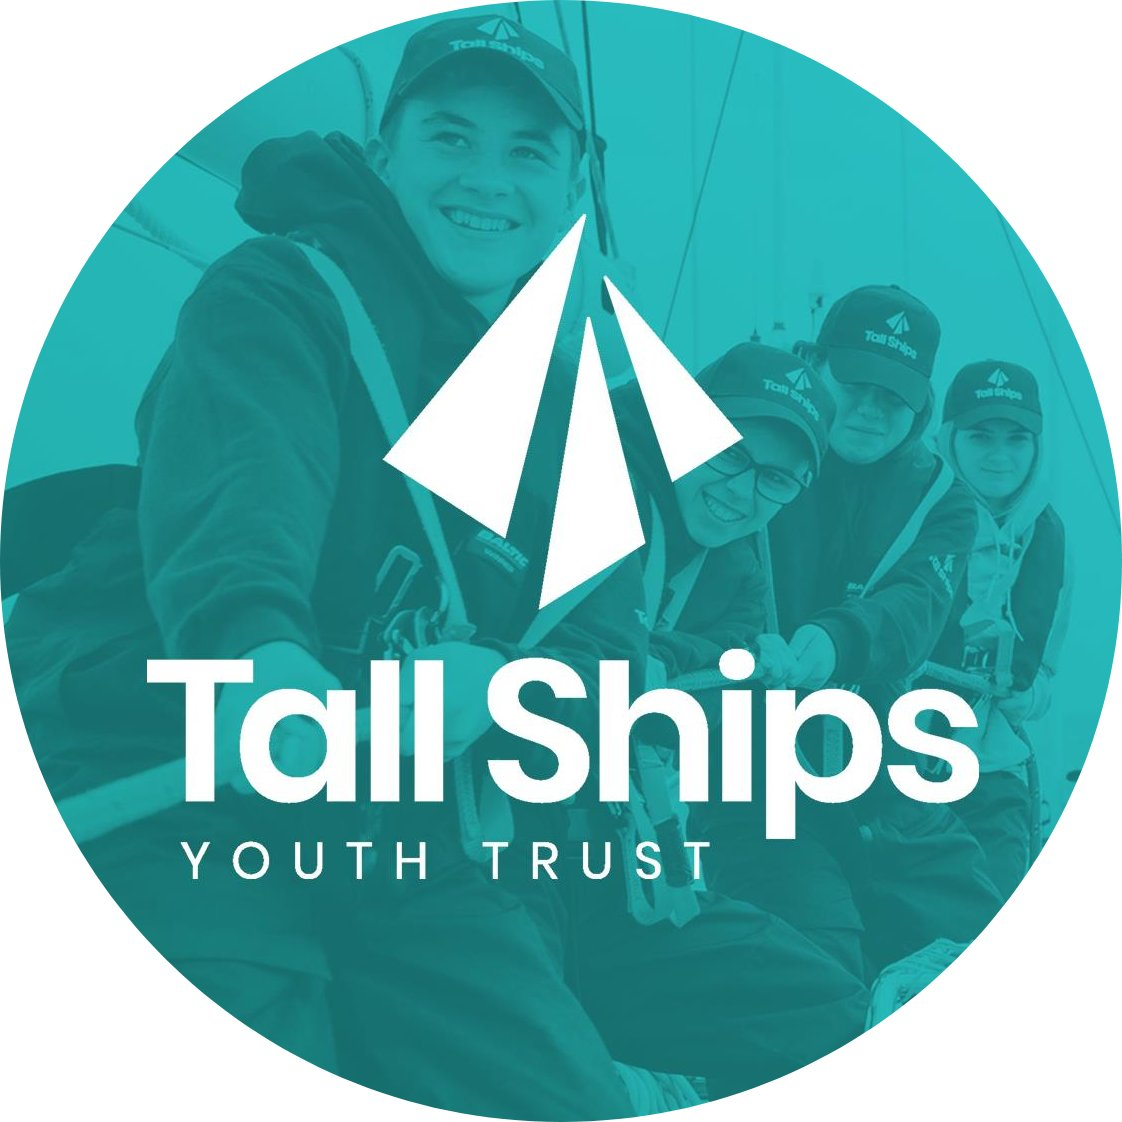 Tall Ships Youth Trust's profile pic